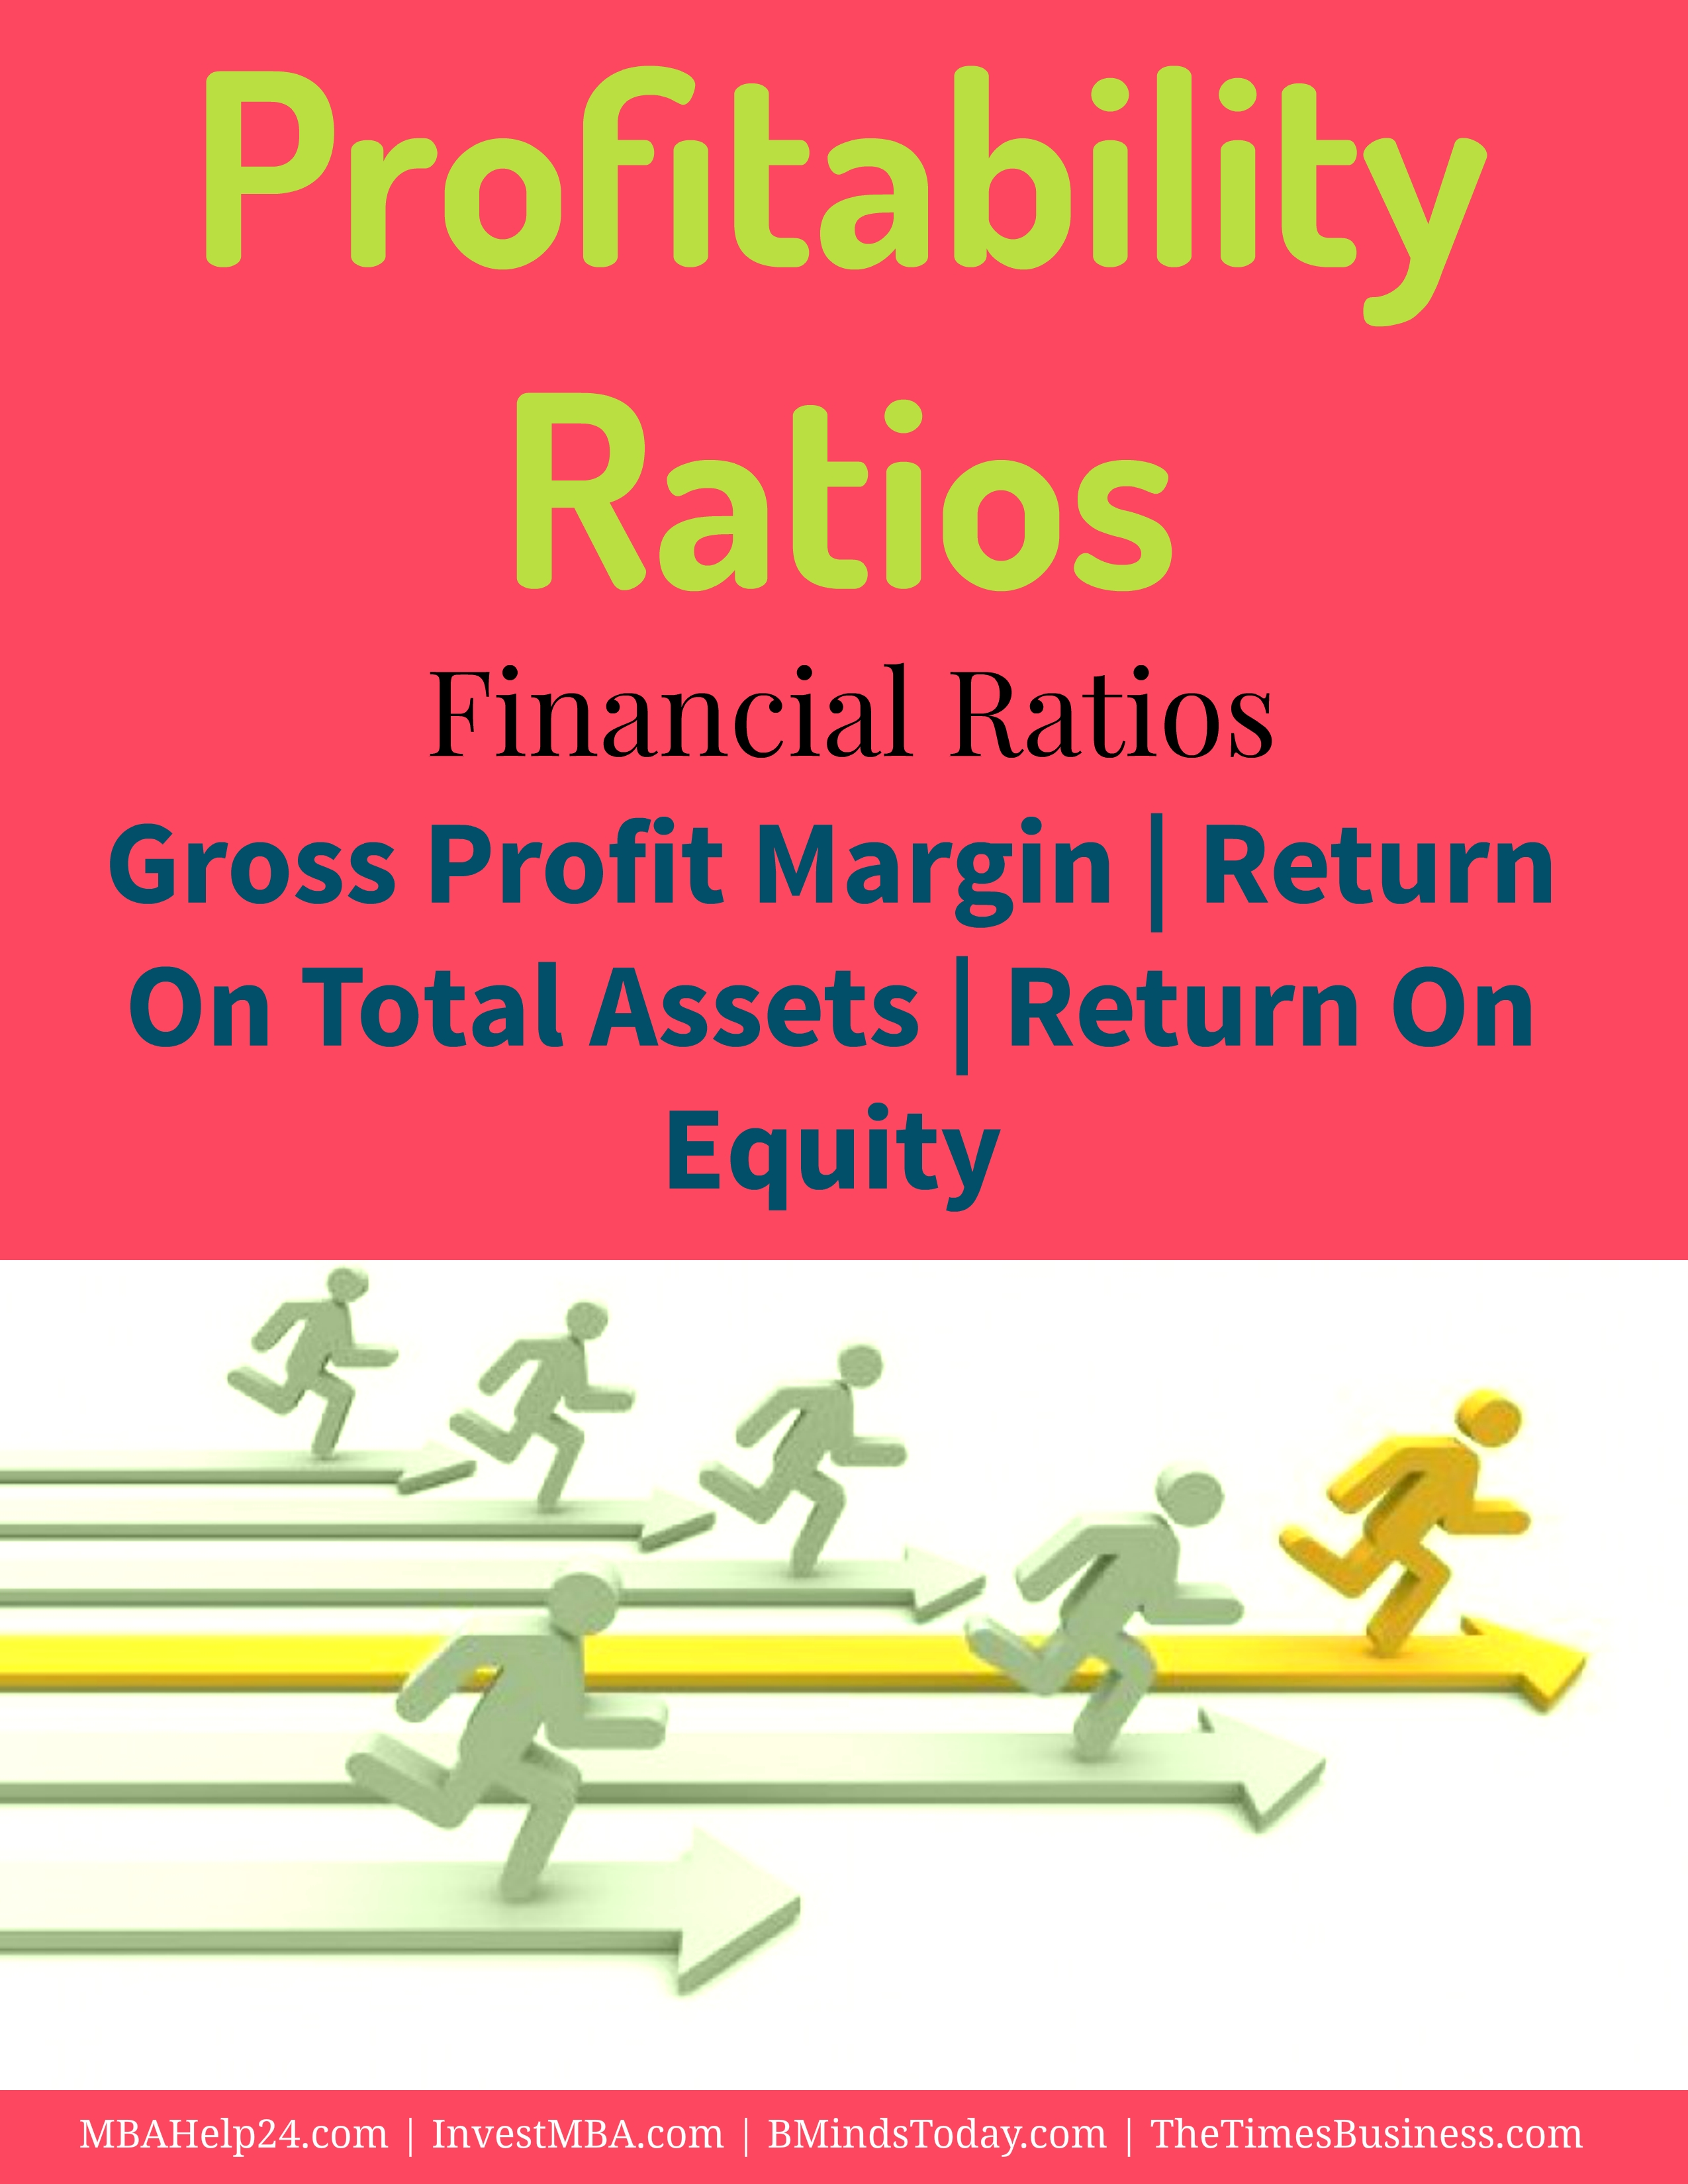 Profitability Ratios- Gross Profit Margin- Return On Assets- Return On Equity Profitability Ratios Profitability Ratios | Gross Profit Margin | Return On Assets | Return On Equity Profitability ratios